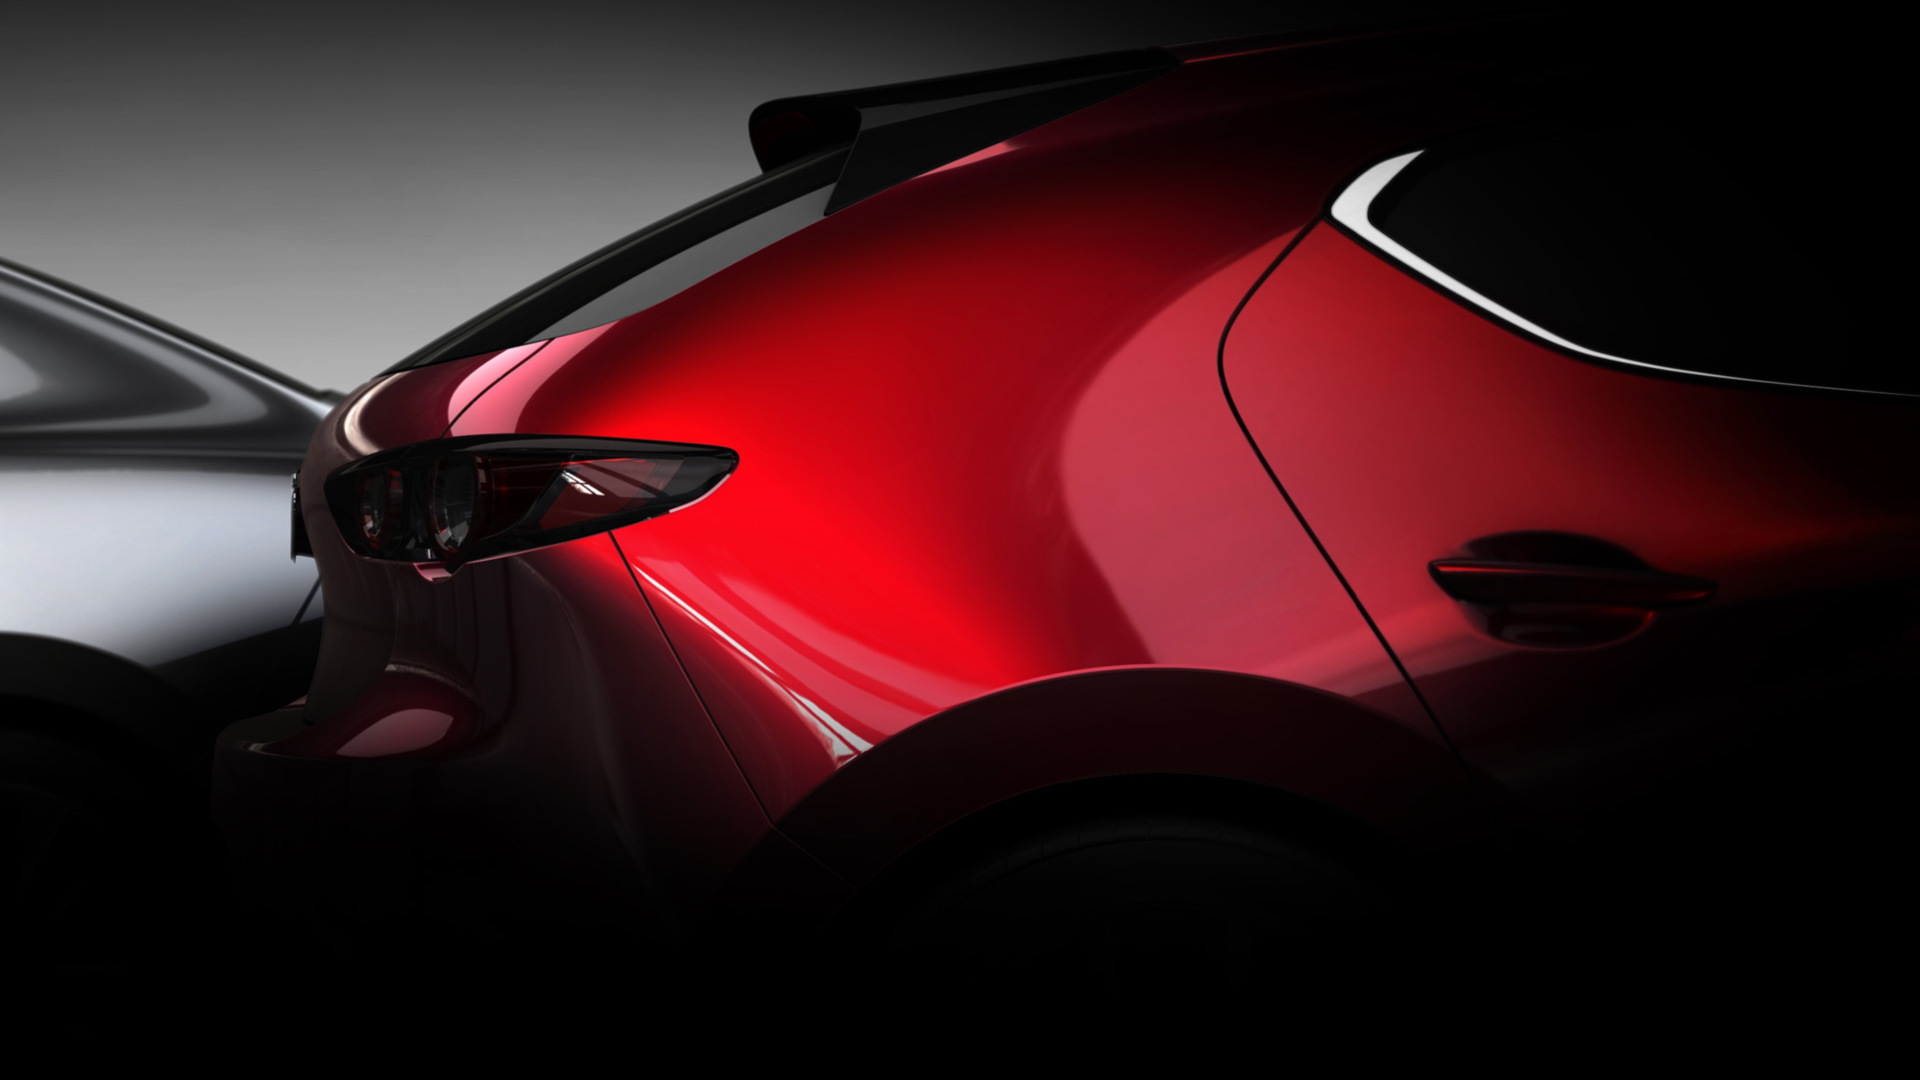 Teaser for next-gen Mazda 3 debuting at 2018 Los Angeles auto show